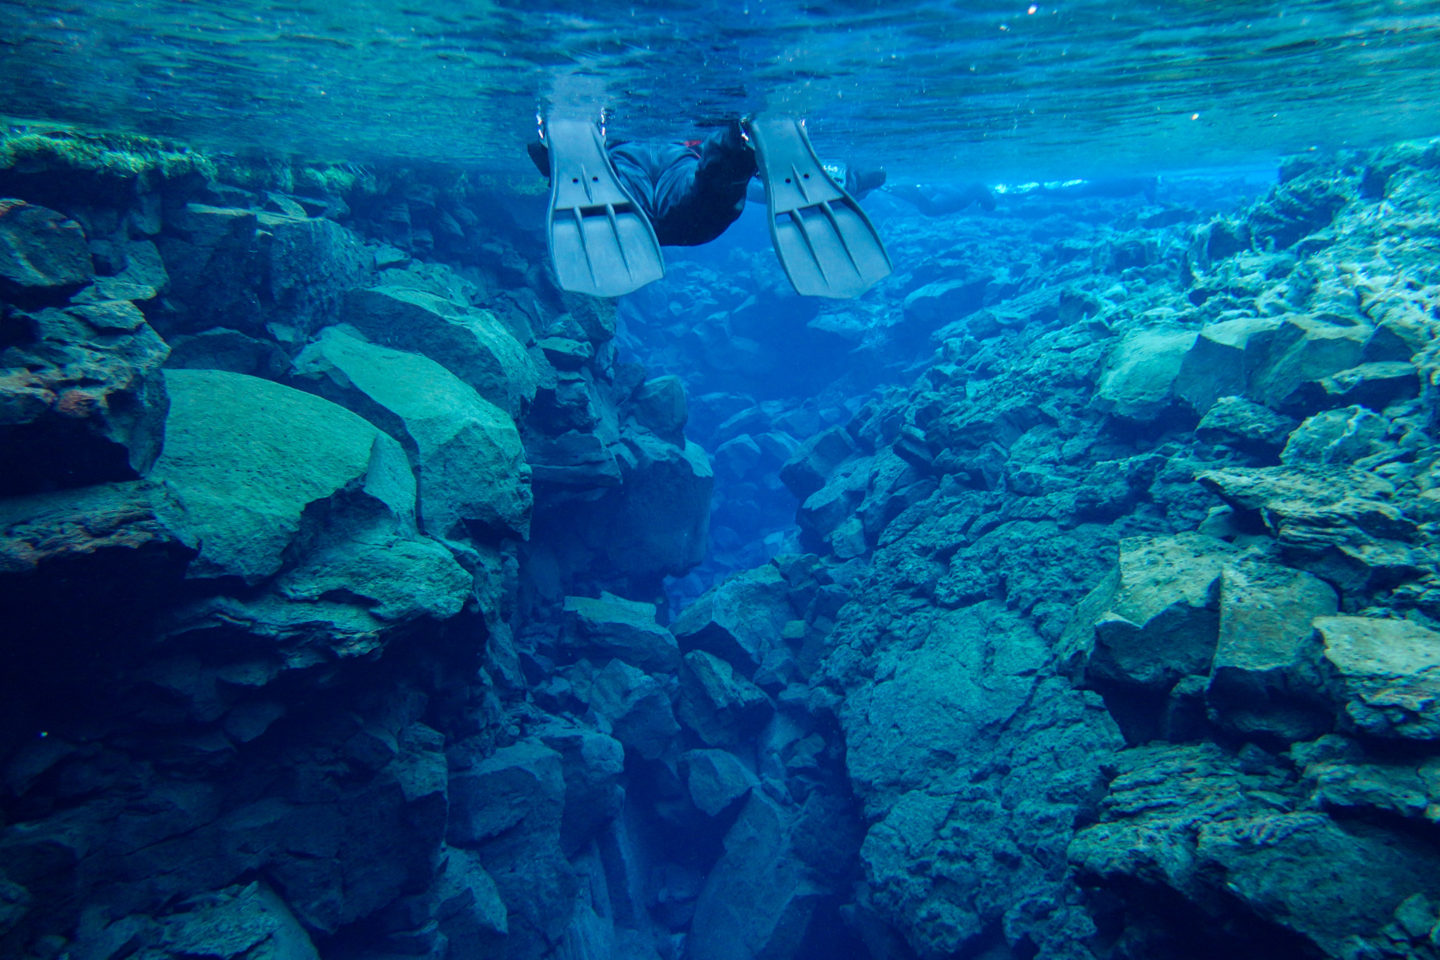 Snorkeling Iceland's Silfra Fissure in Winter